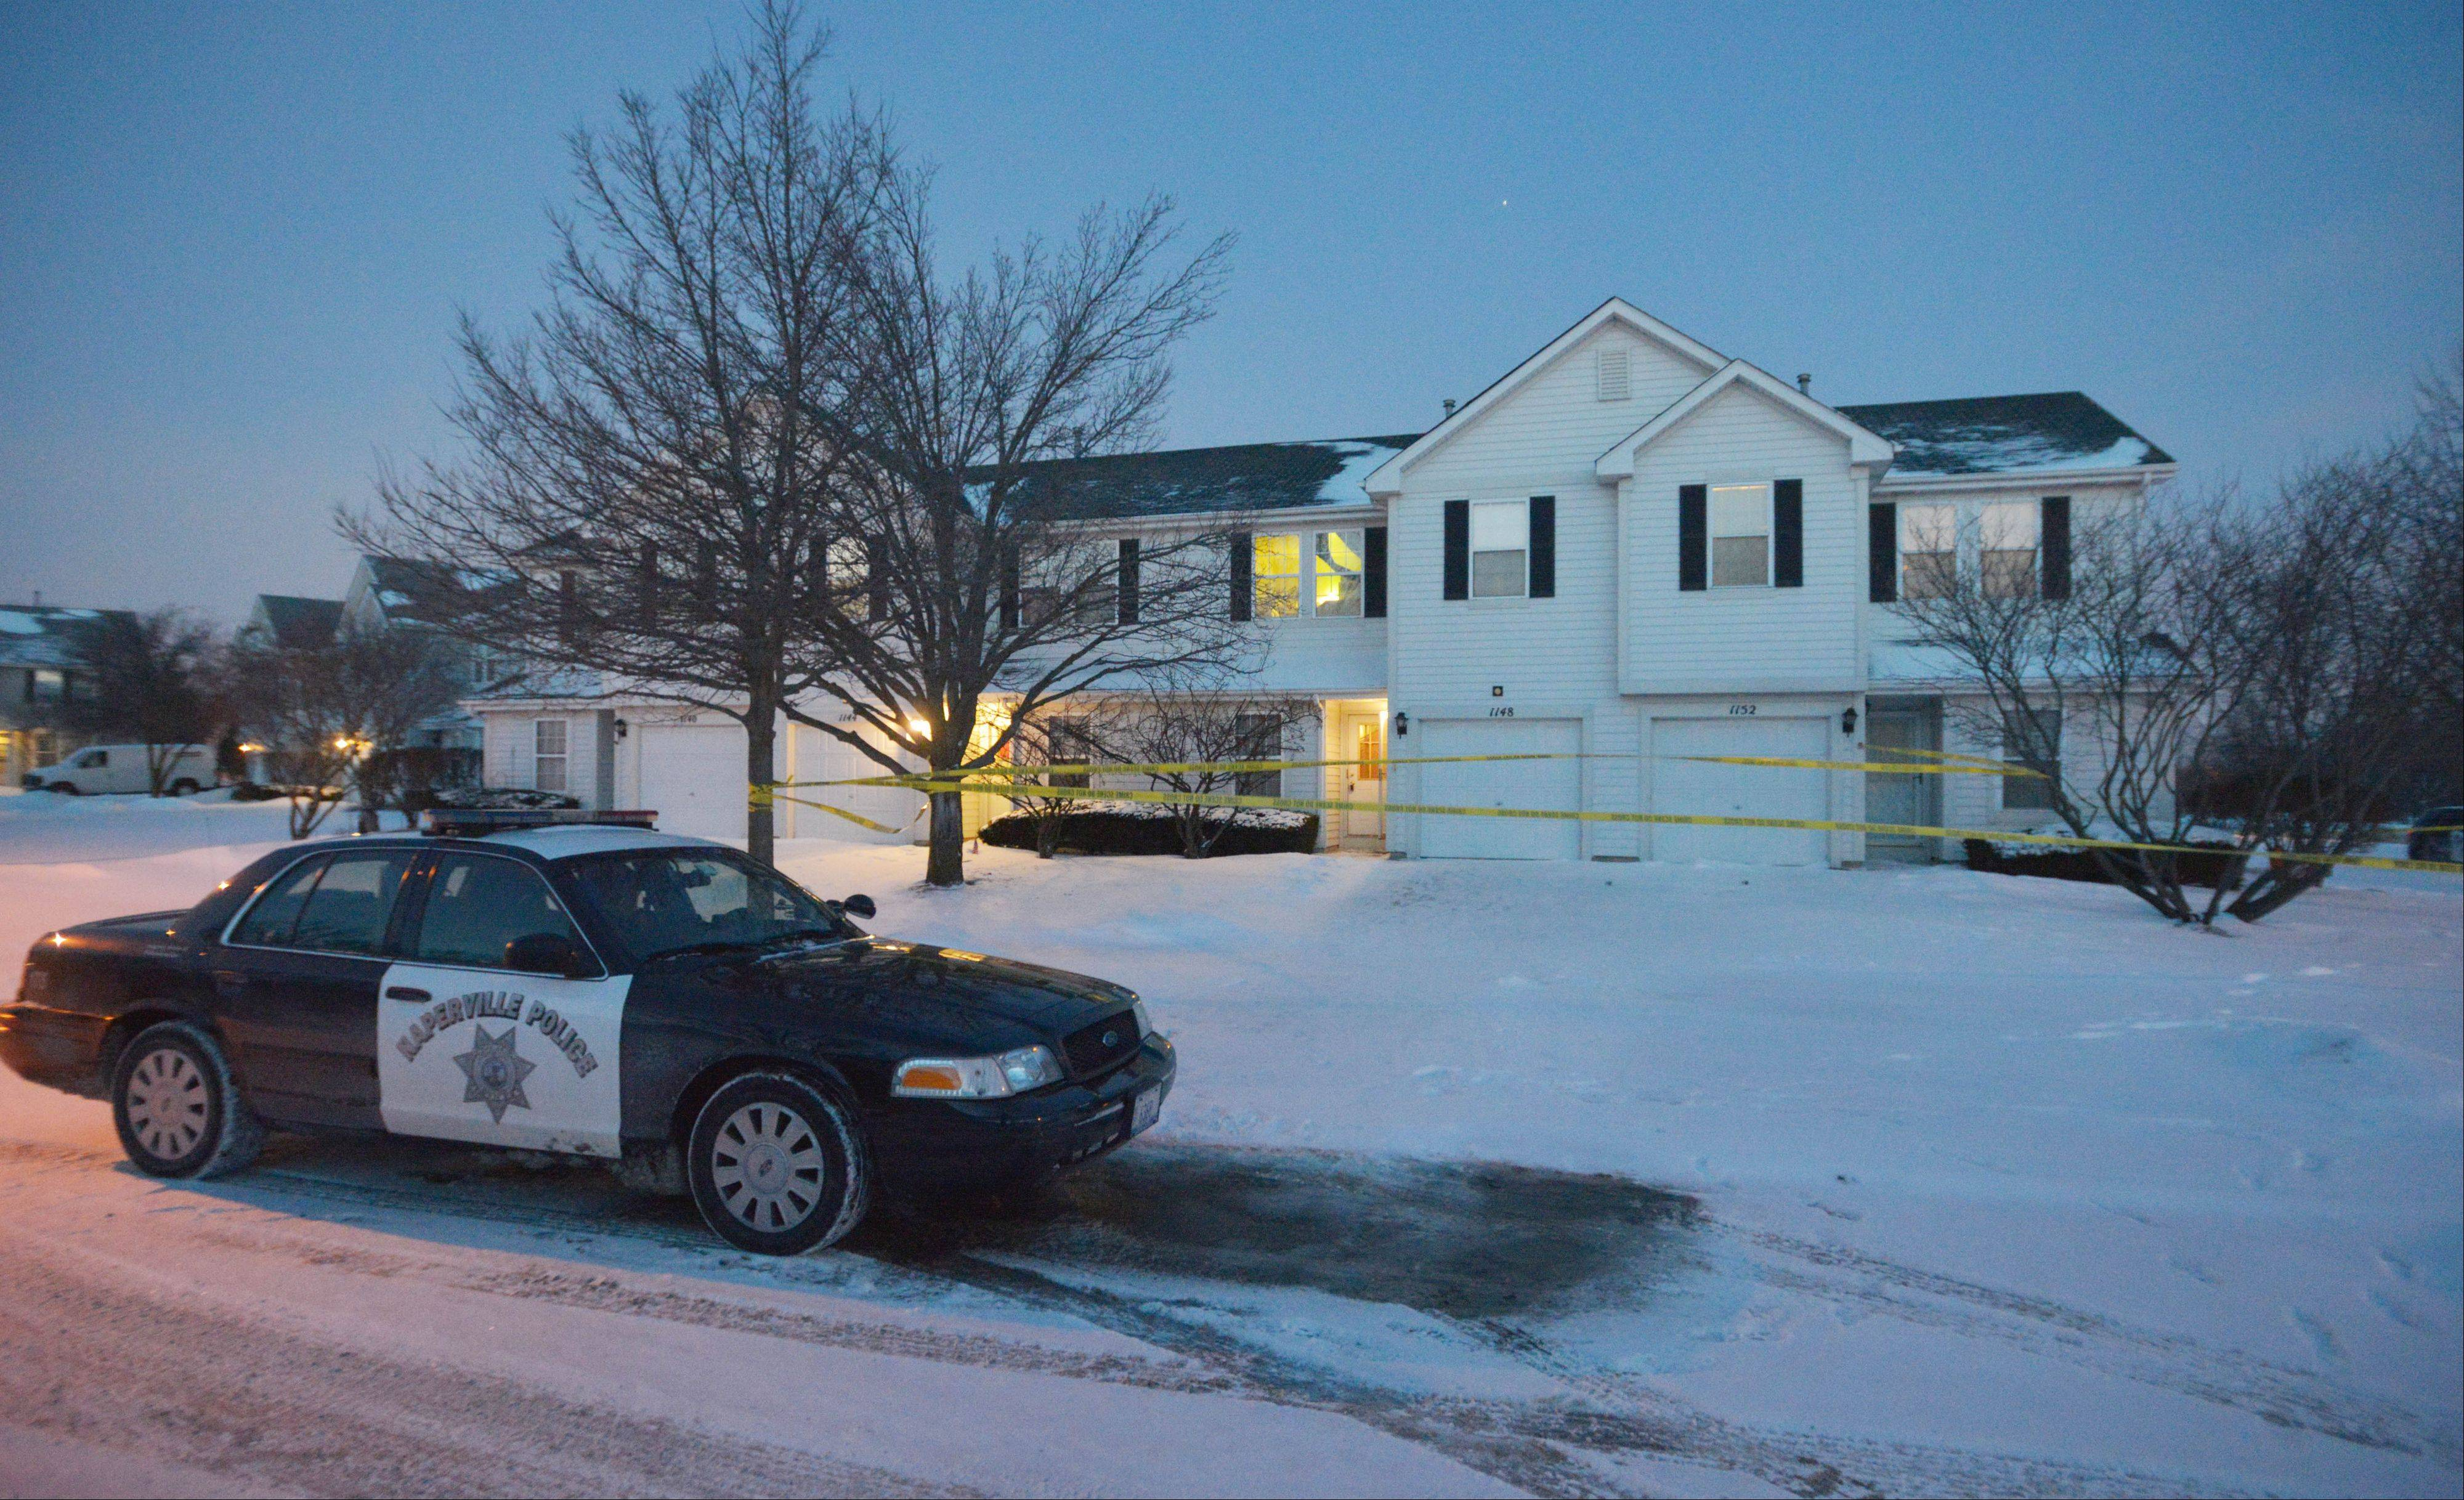 A Naperville police car idles in front of a townhouse on Vail Court in Naperville, where a man was found dead Wednesday morning.